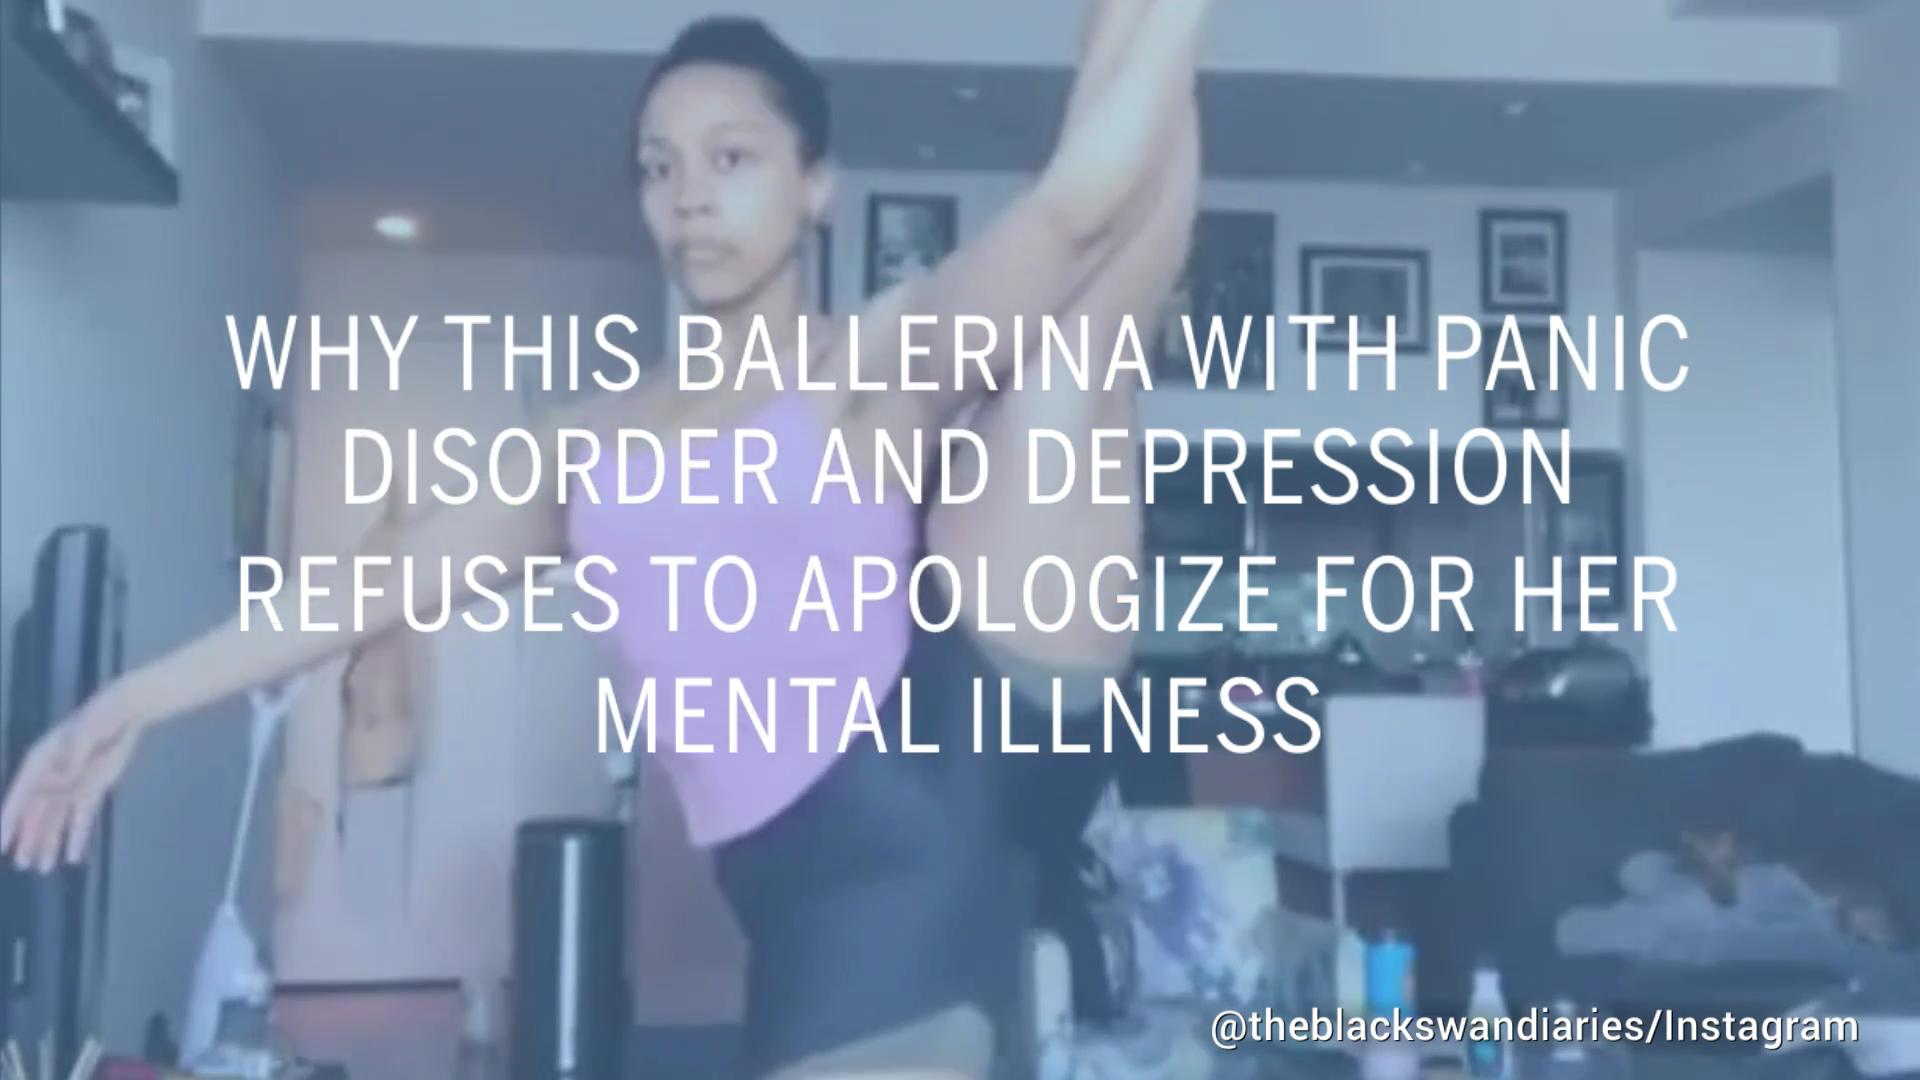 Why This Ballerina Refuses to Apologize for Her Mental